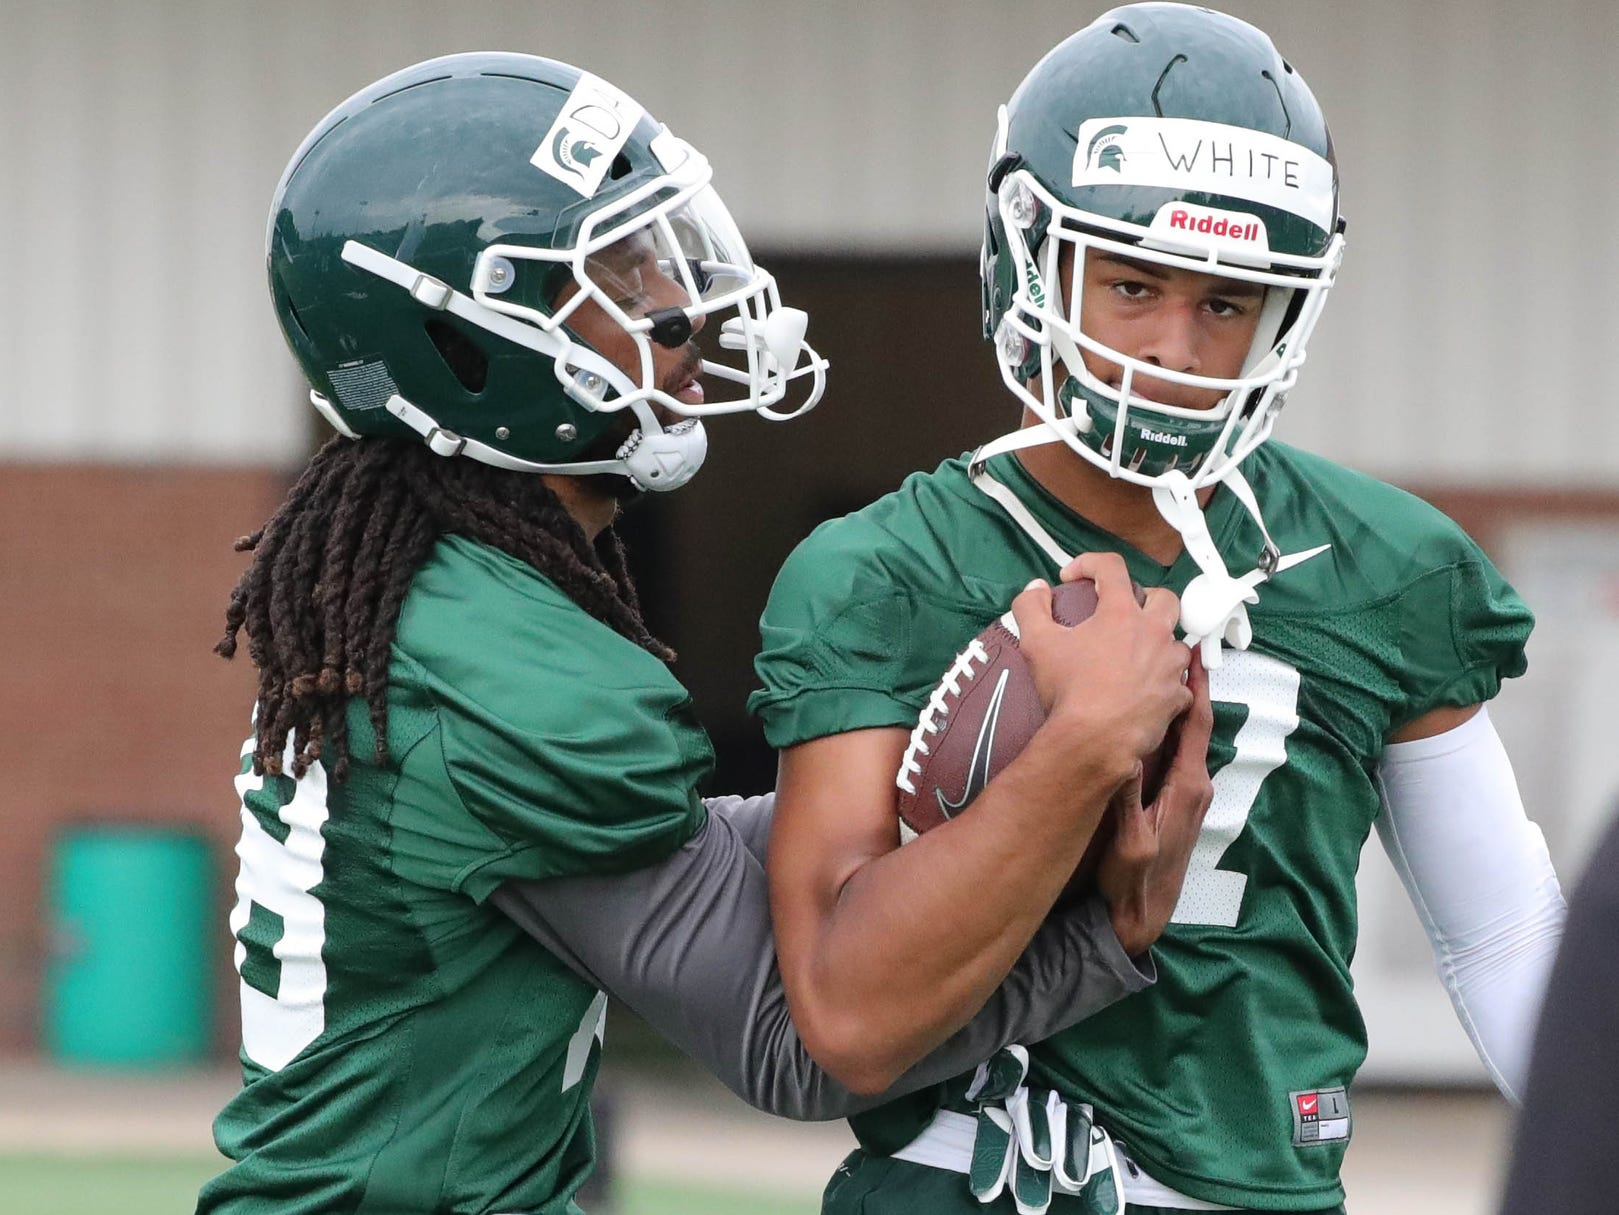 Michigan State receivers Felton Davis III and Cody White work on ball security during practice on Thursday, August 2, 2018, in East Lansing.